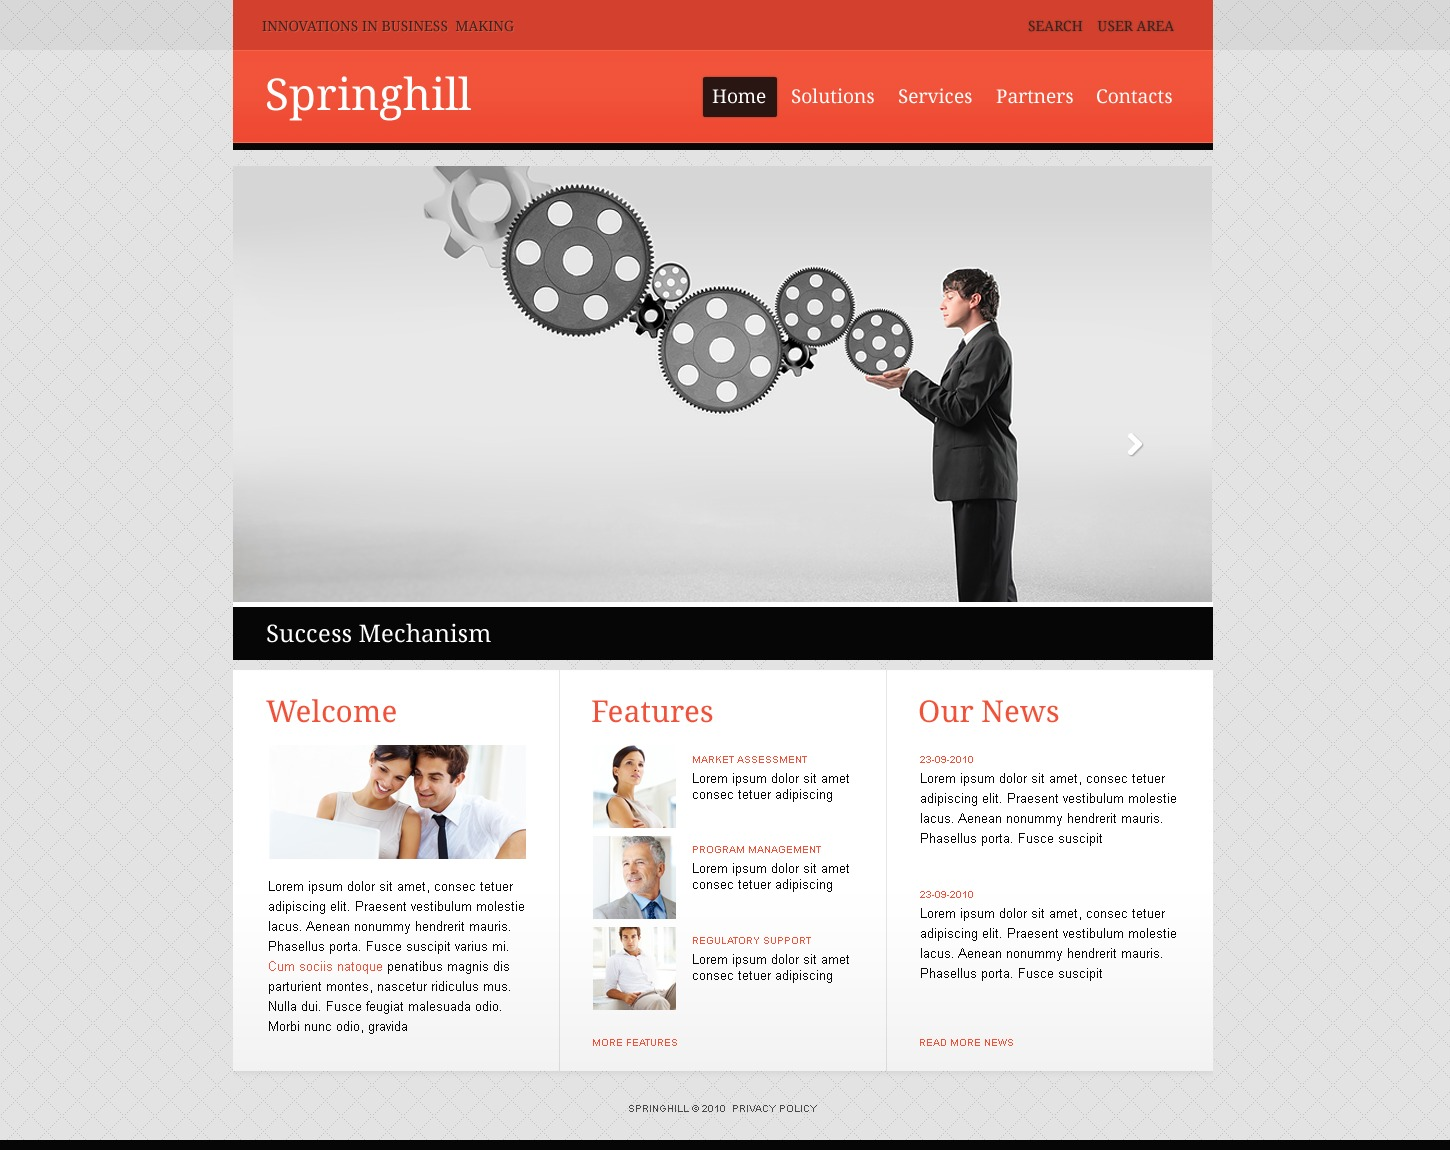 The Springhill Business Company PSD Design 54517, one of the best PSD templates of its kind (business, wide, jquery), also known as springhill business company PSD template, corporate solutions PSD template, innovations PSD template, contacts PSD template, service PSD template, support PSD template, information dealer PSD template, stocks PSD template, team PSD template, success PSD template, money PSD template, marketing PSD template, director PSD template, manager PSD template, analytics PSD template, planning PSD template, limited PSD template, office PSD template, sales and related with springhill business company, corporate solutions, innovations, contacts, service, support, information dealer, stocks, team, success, money, marketing, director, manager, analytics, planning, limited, office, sales, etc.